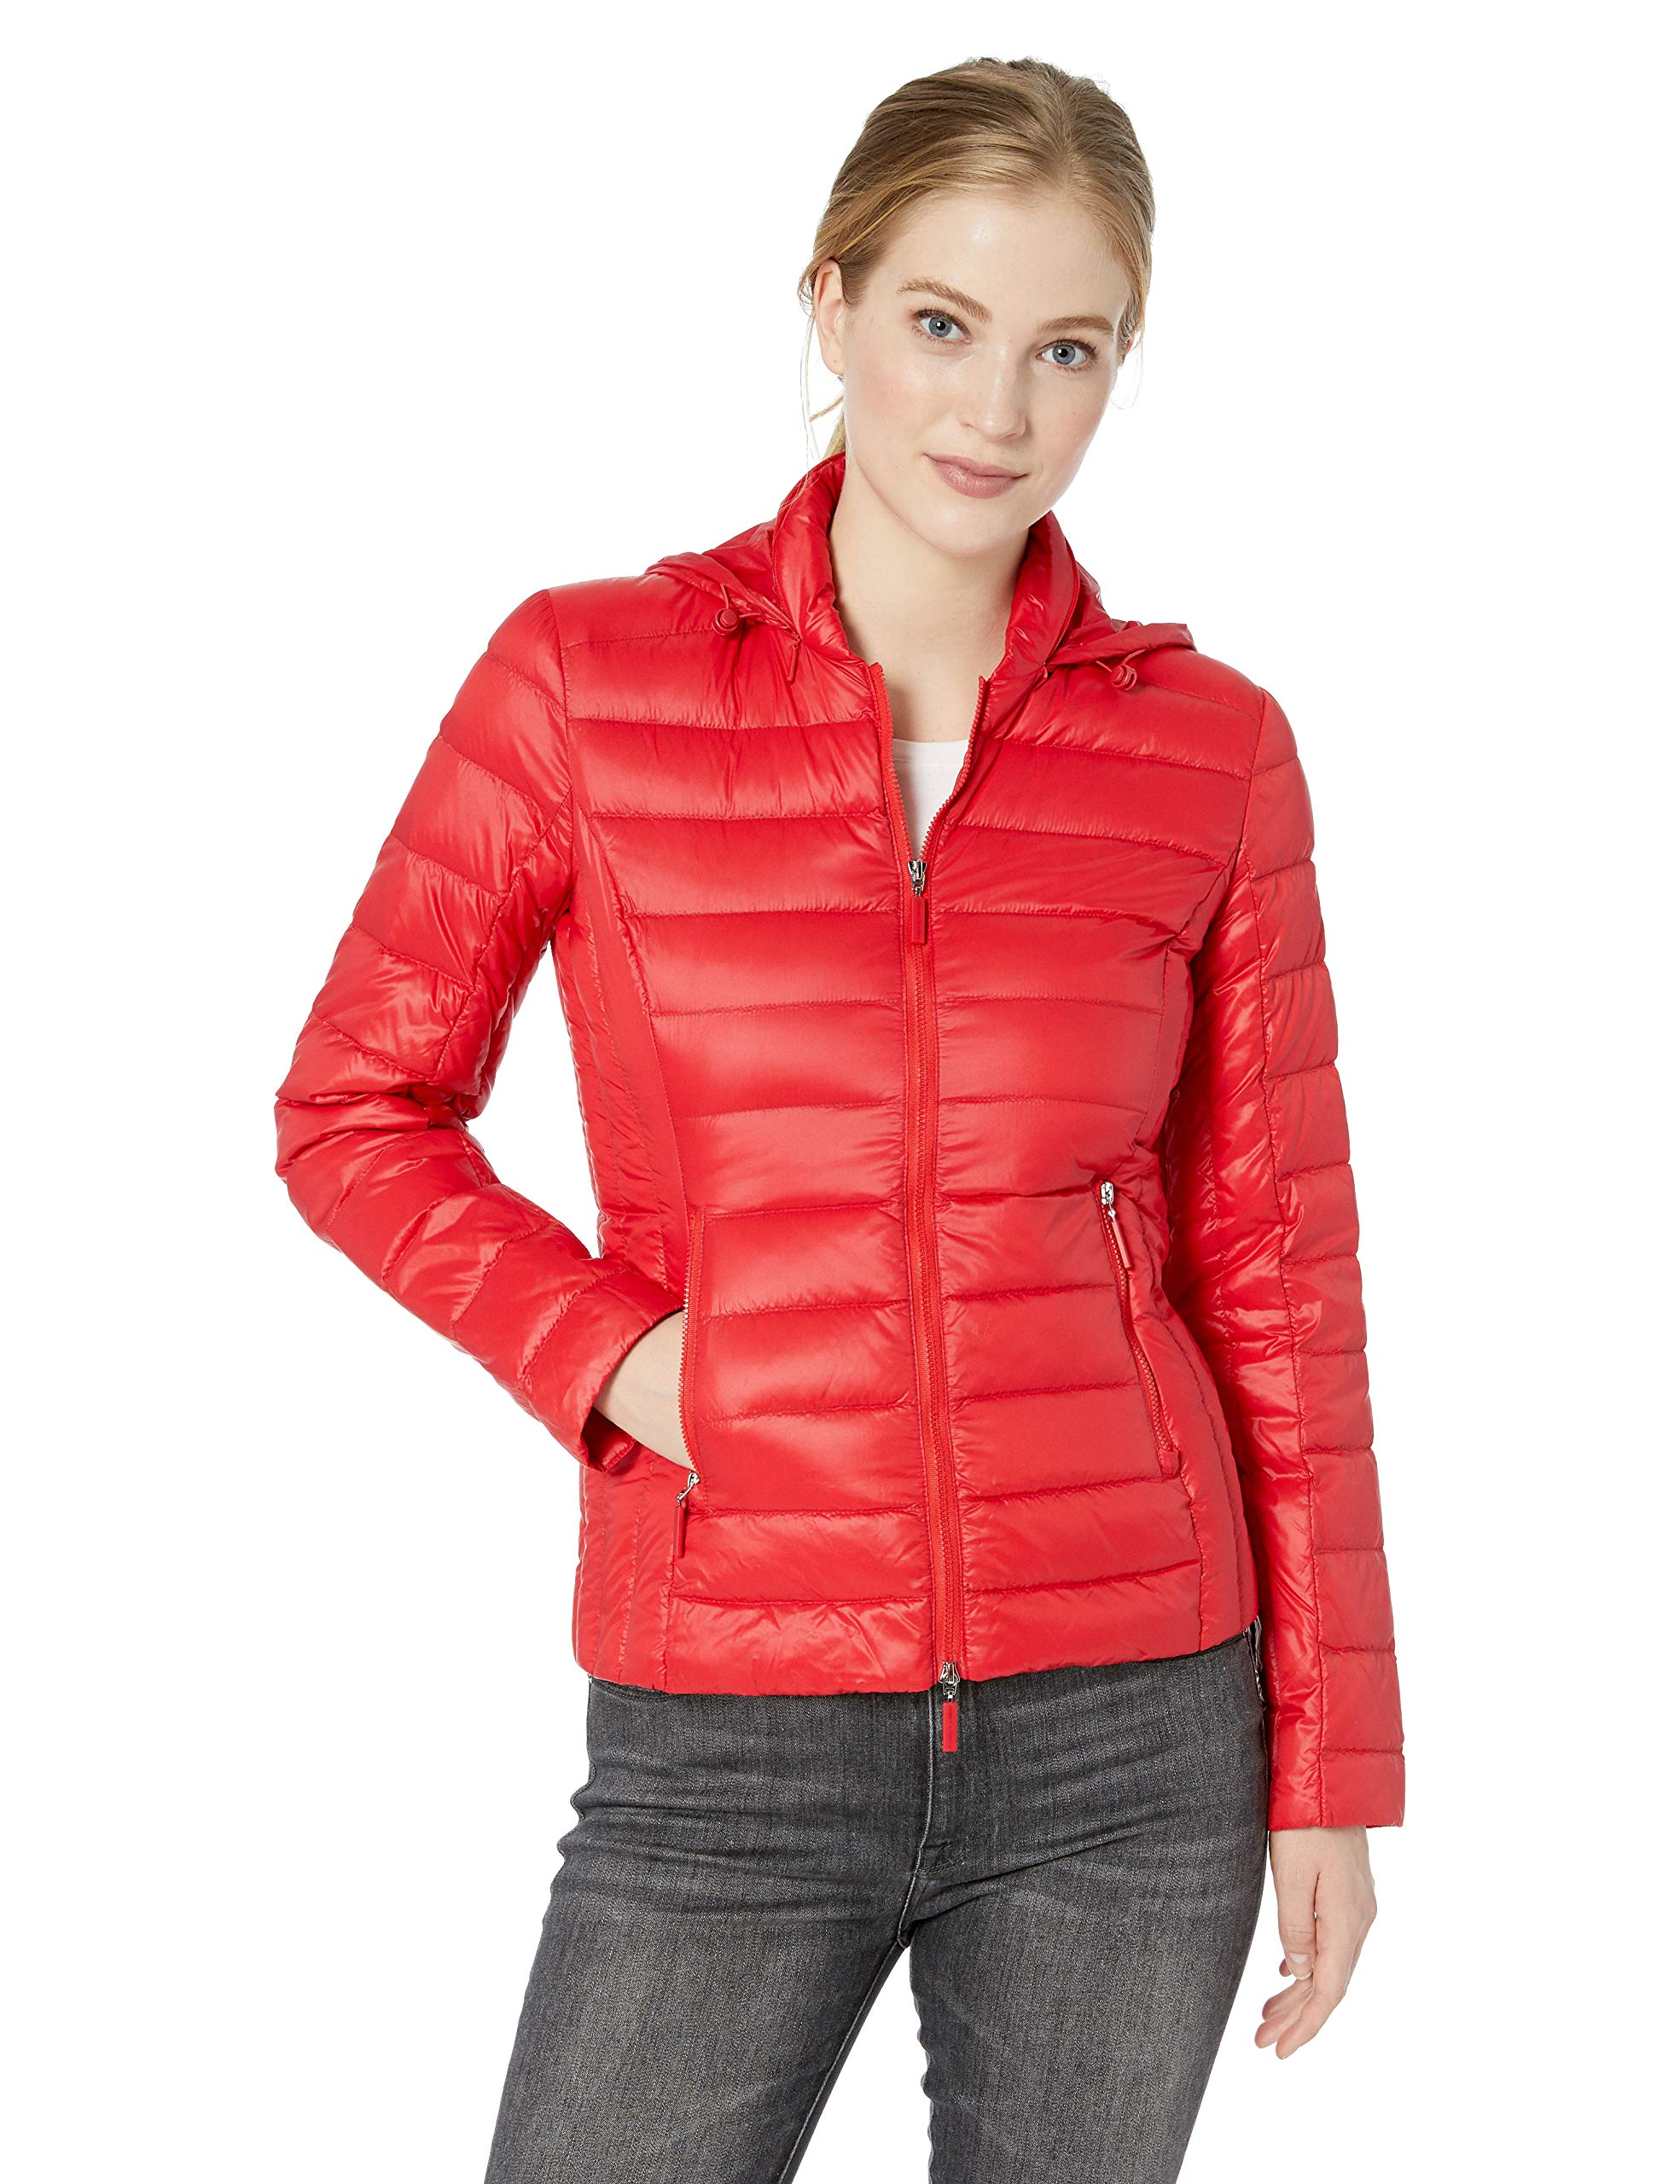 Exchange Down Femme Zip small Armani Rouge BomberMoulin Veste 1408X Up IYD2WH9E